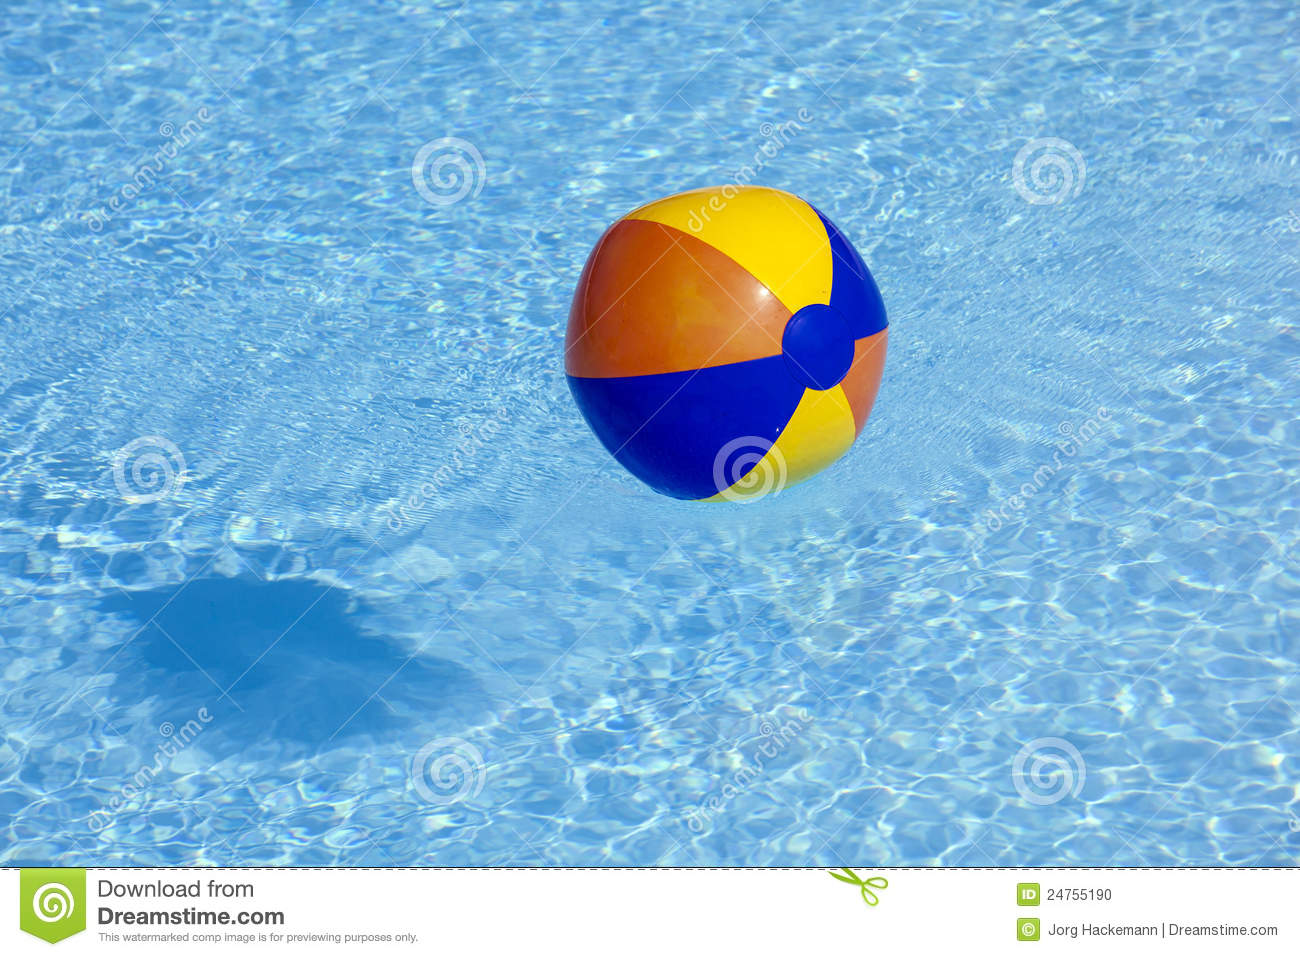 Plastic ball flying in the pool